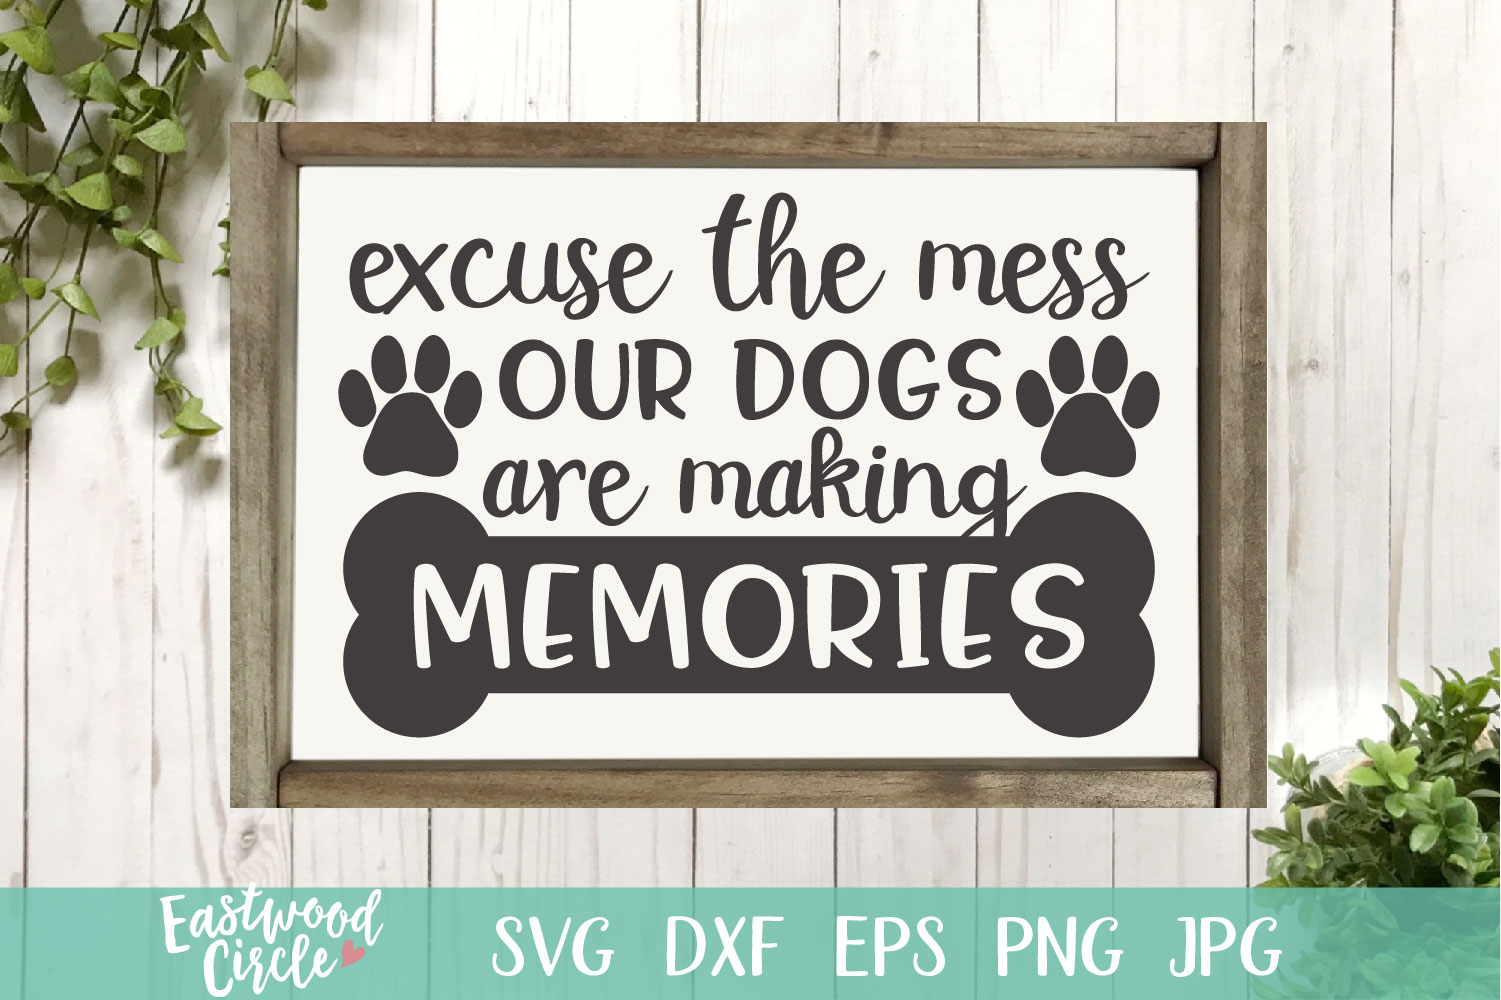 Excuse the Mess Our Dogs Are Making Memories - A Dog SVG example image 1